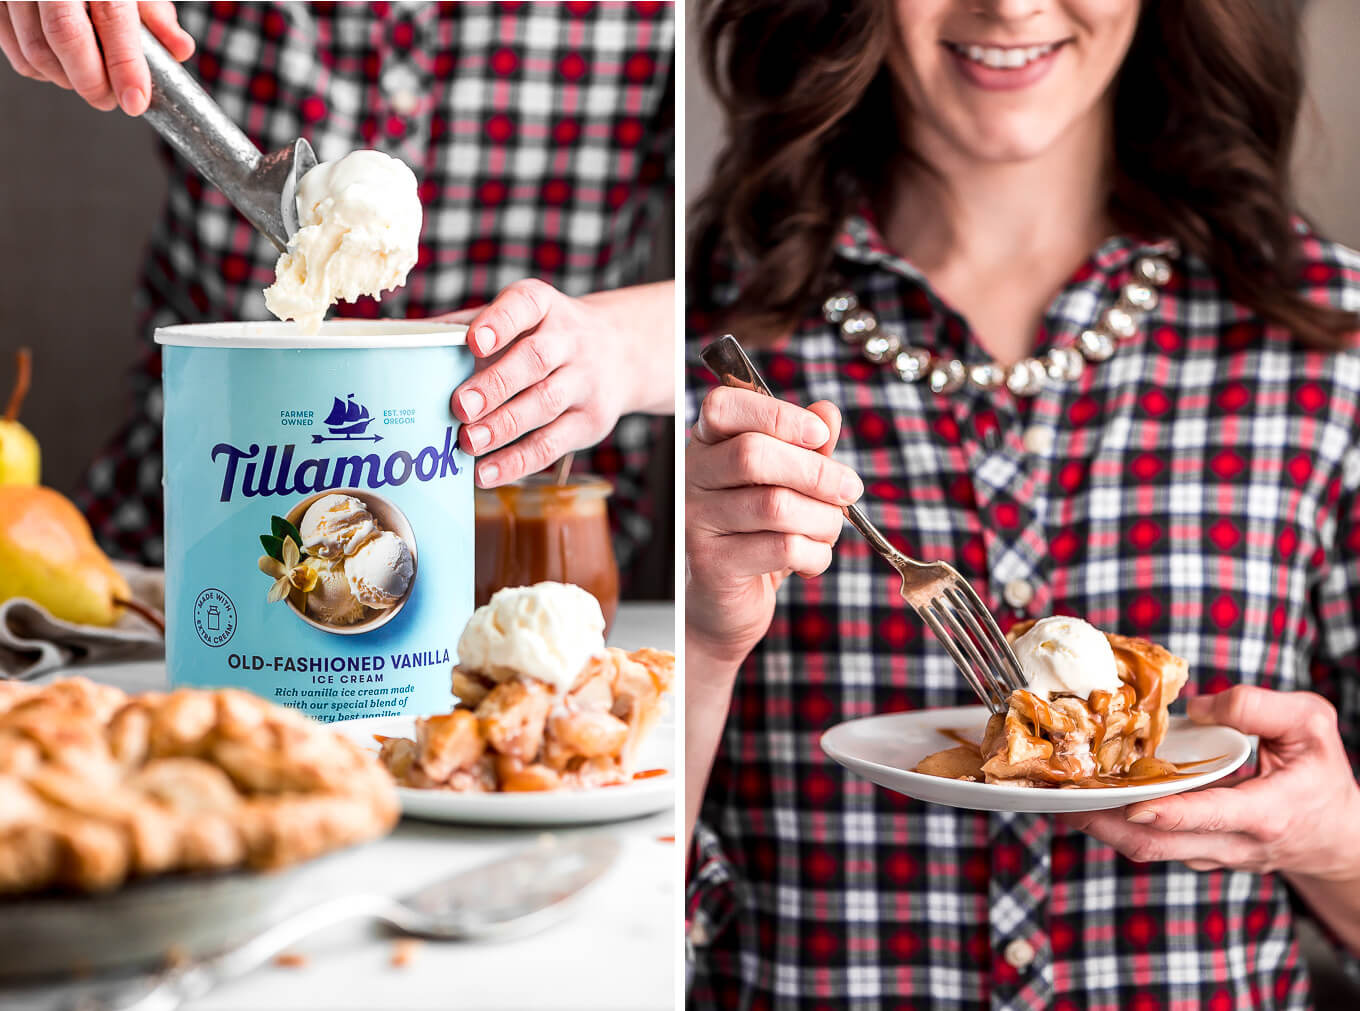 Scooping vanilla ice cream out of the carton; holding a plate of pie and digging in with a fork.